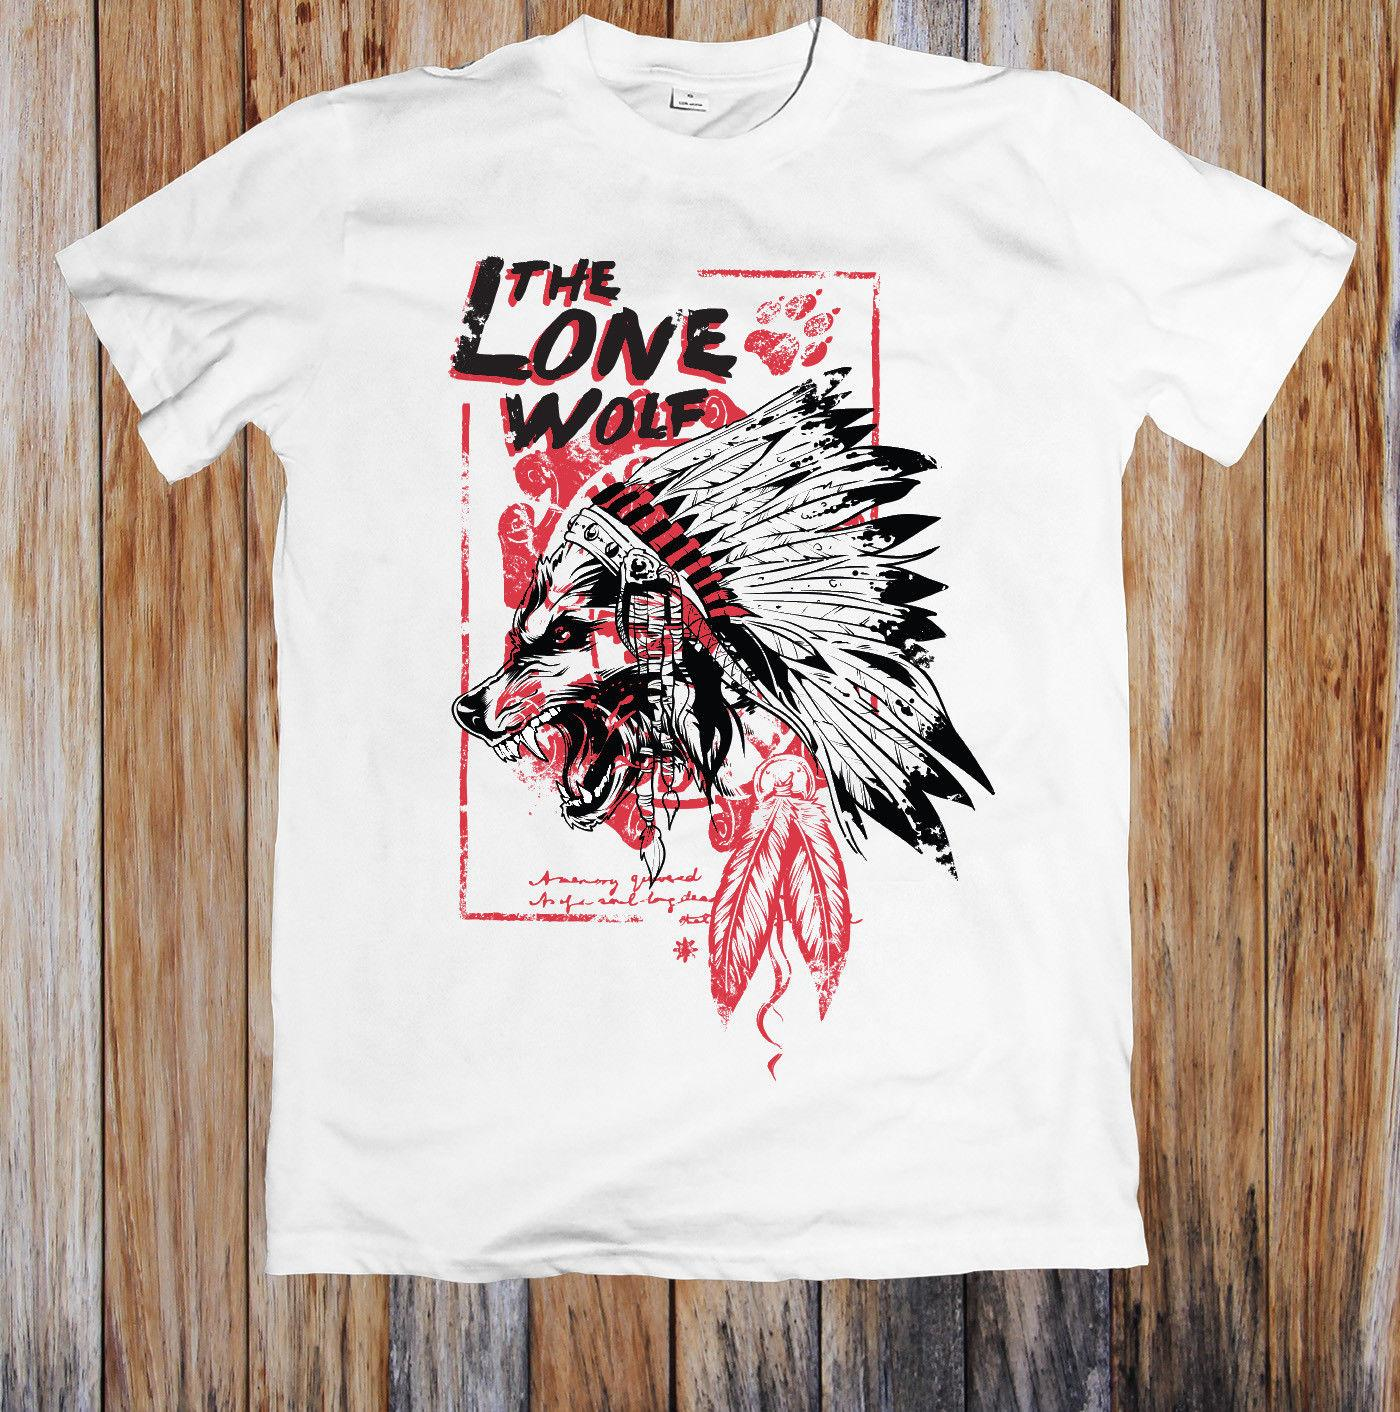 a37f2f919 The Lone Wolf Unisex T Shirt Hot Sell 2018 Fashion T Shirt Short Sleeve  Tricolor New T Shirts Funny Tops Tee New Unisex Funny Womens Shirt T Shart  From ...